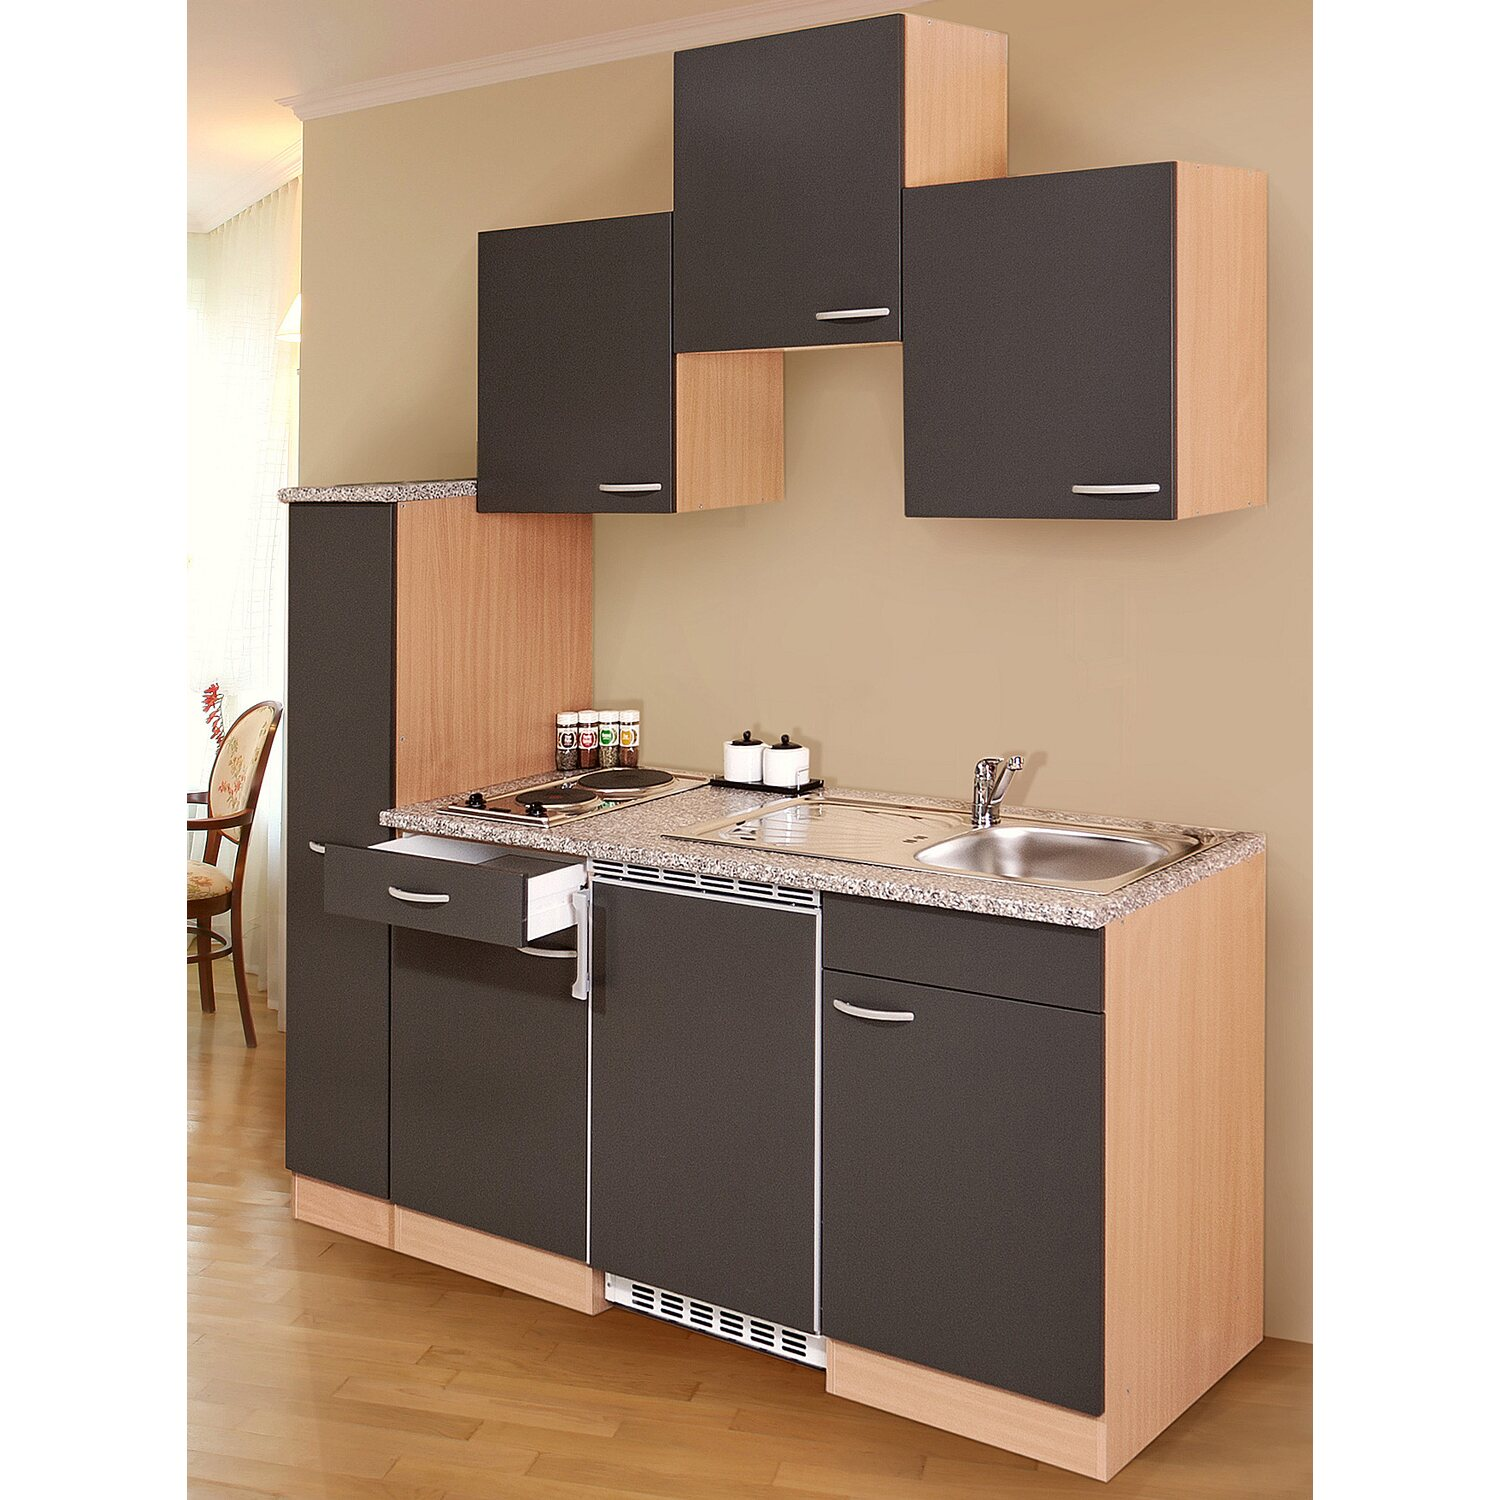 respekta k chenzeile kb180bg 180 cm grau buche nachbildung. Black Bedroom Furniture Sets. Home Design Ideas